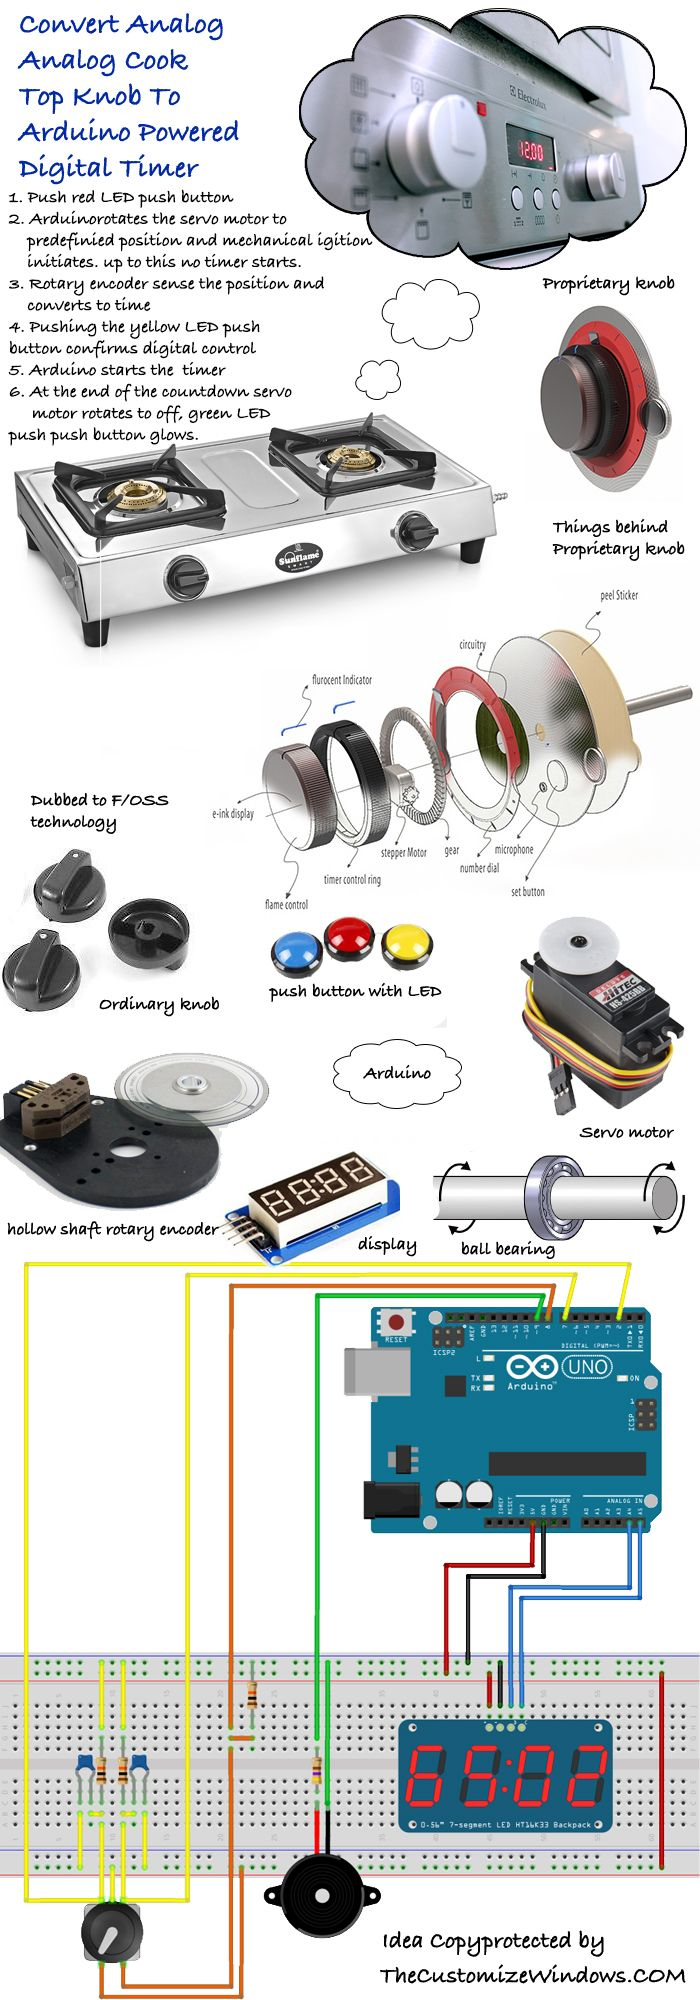 Best 25 hardware components ideas on pinterest computer analog cooktop knob to servo powered timer arduino powered robcynllc Images